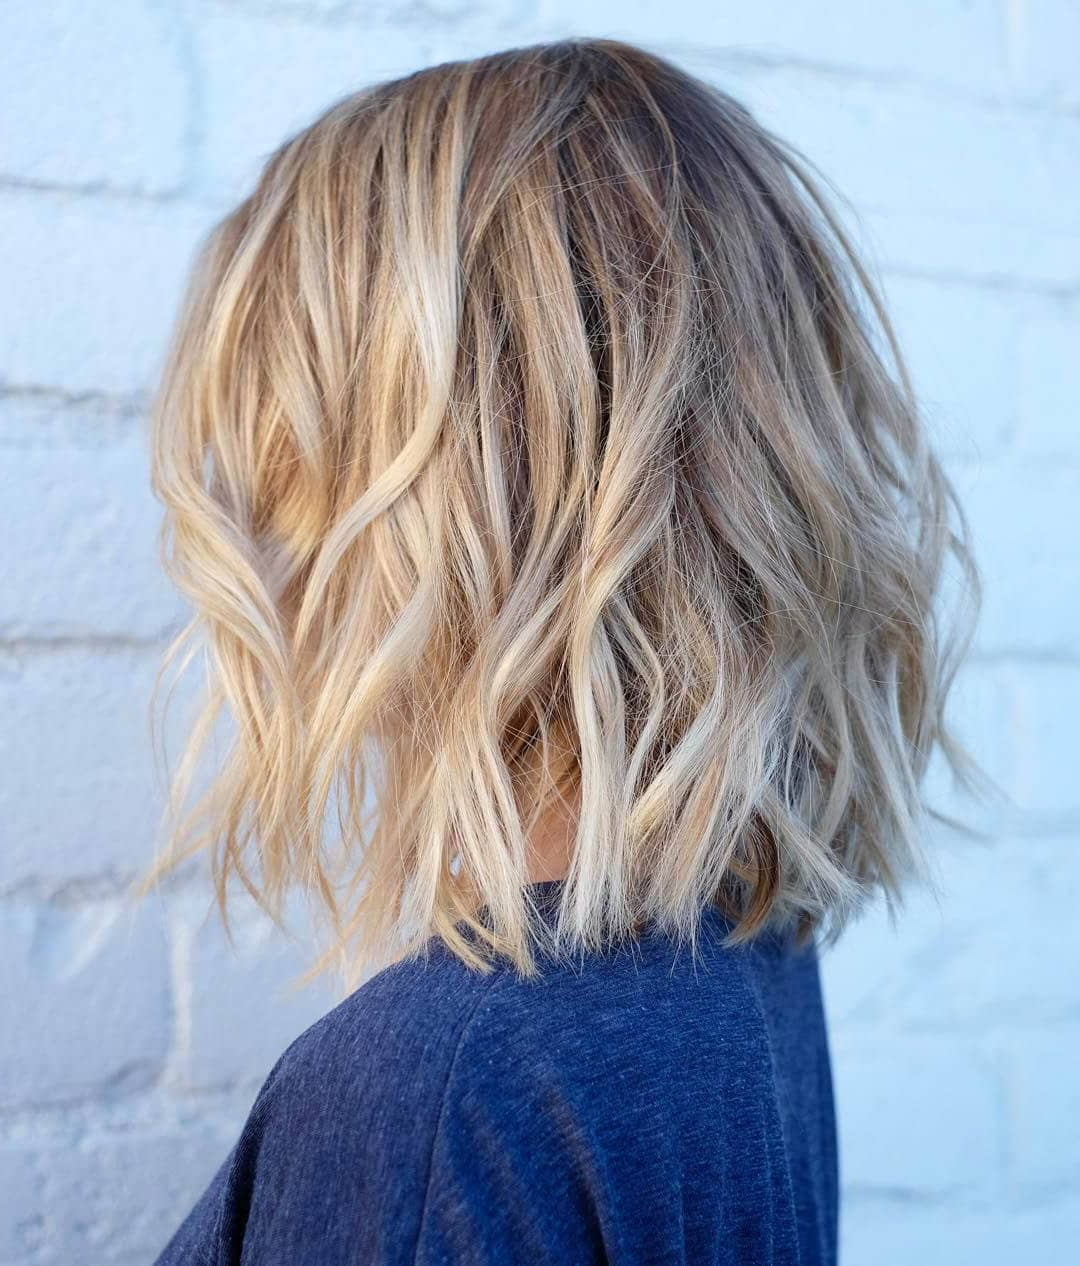 50 Fresh Short Blonde Hair Ideas To Update Your Style In 2018 Inside Short Blonde Styles (View 7 of 25)